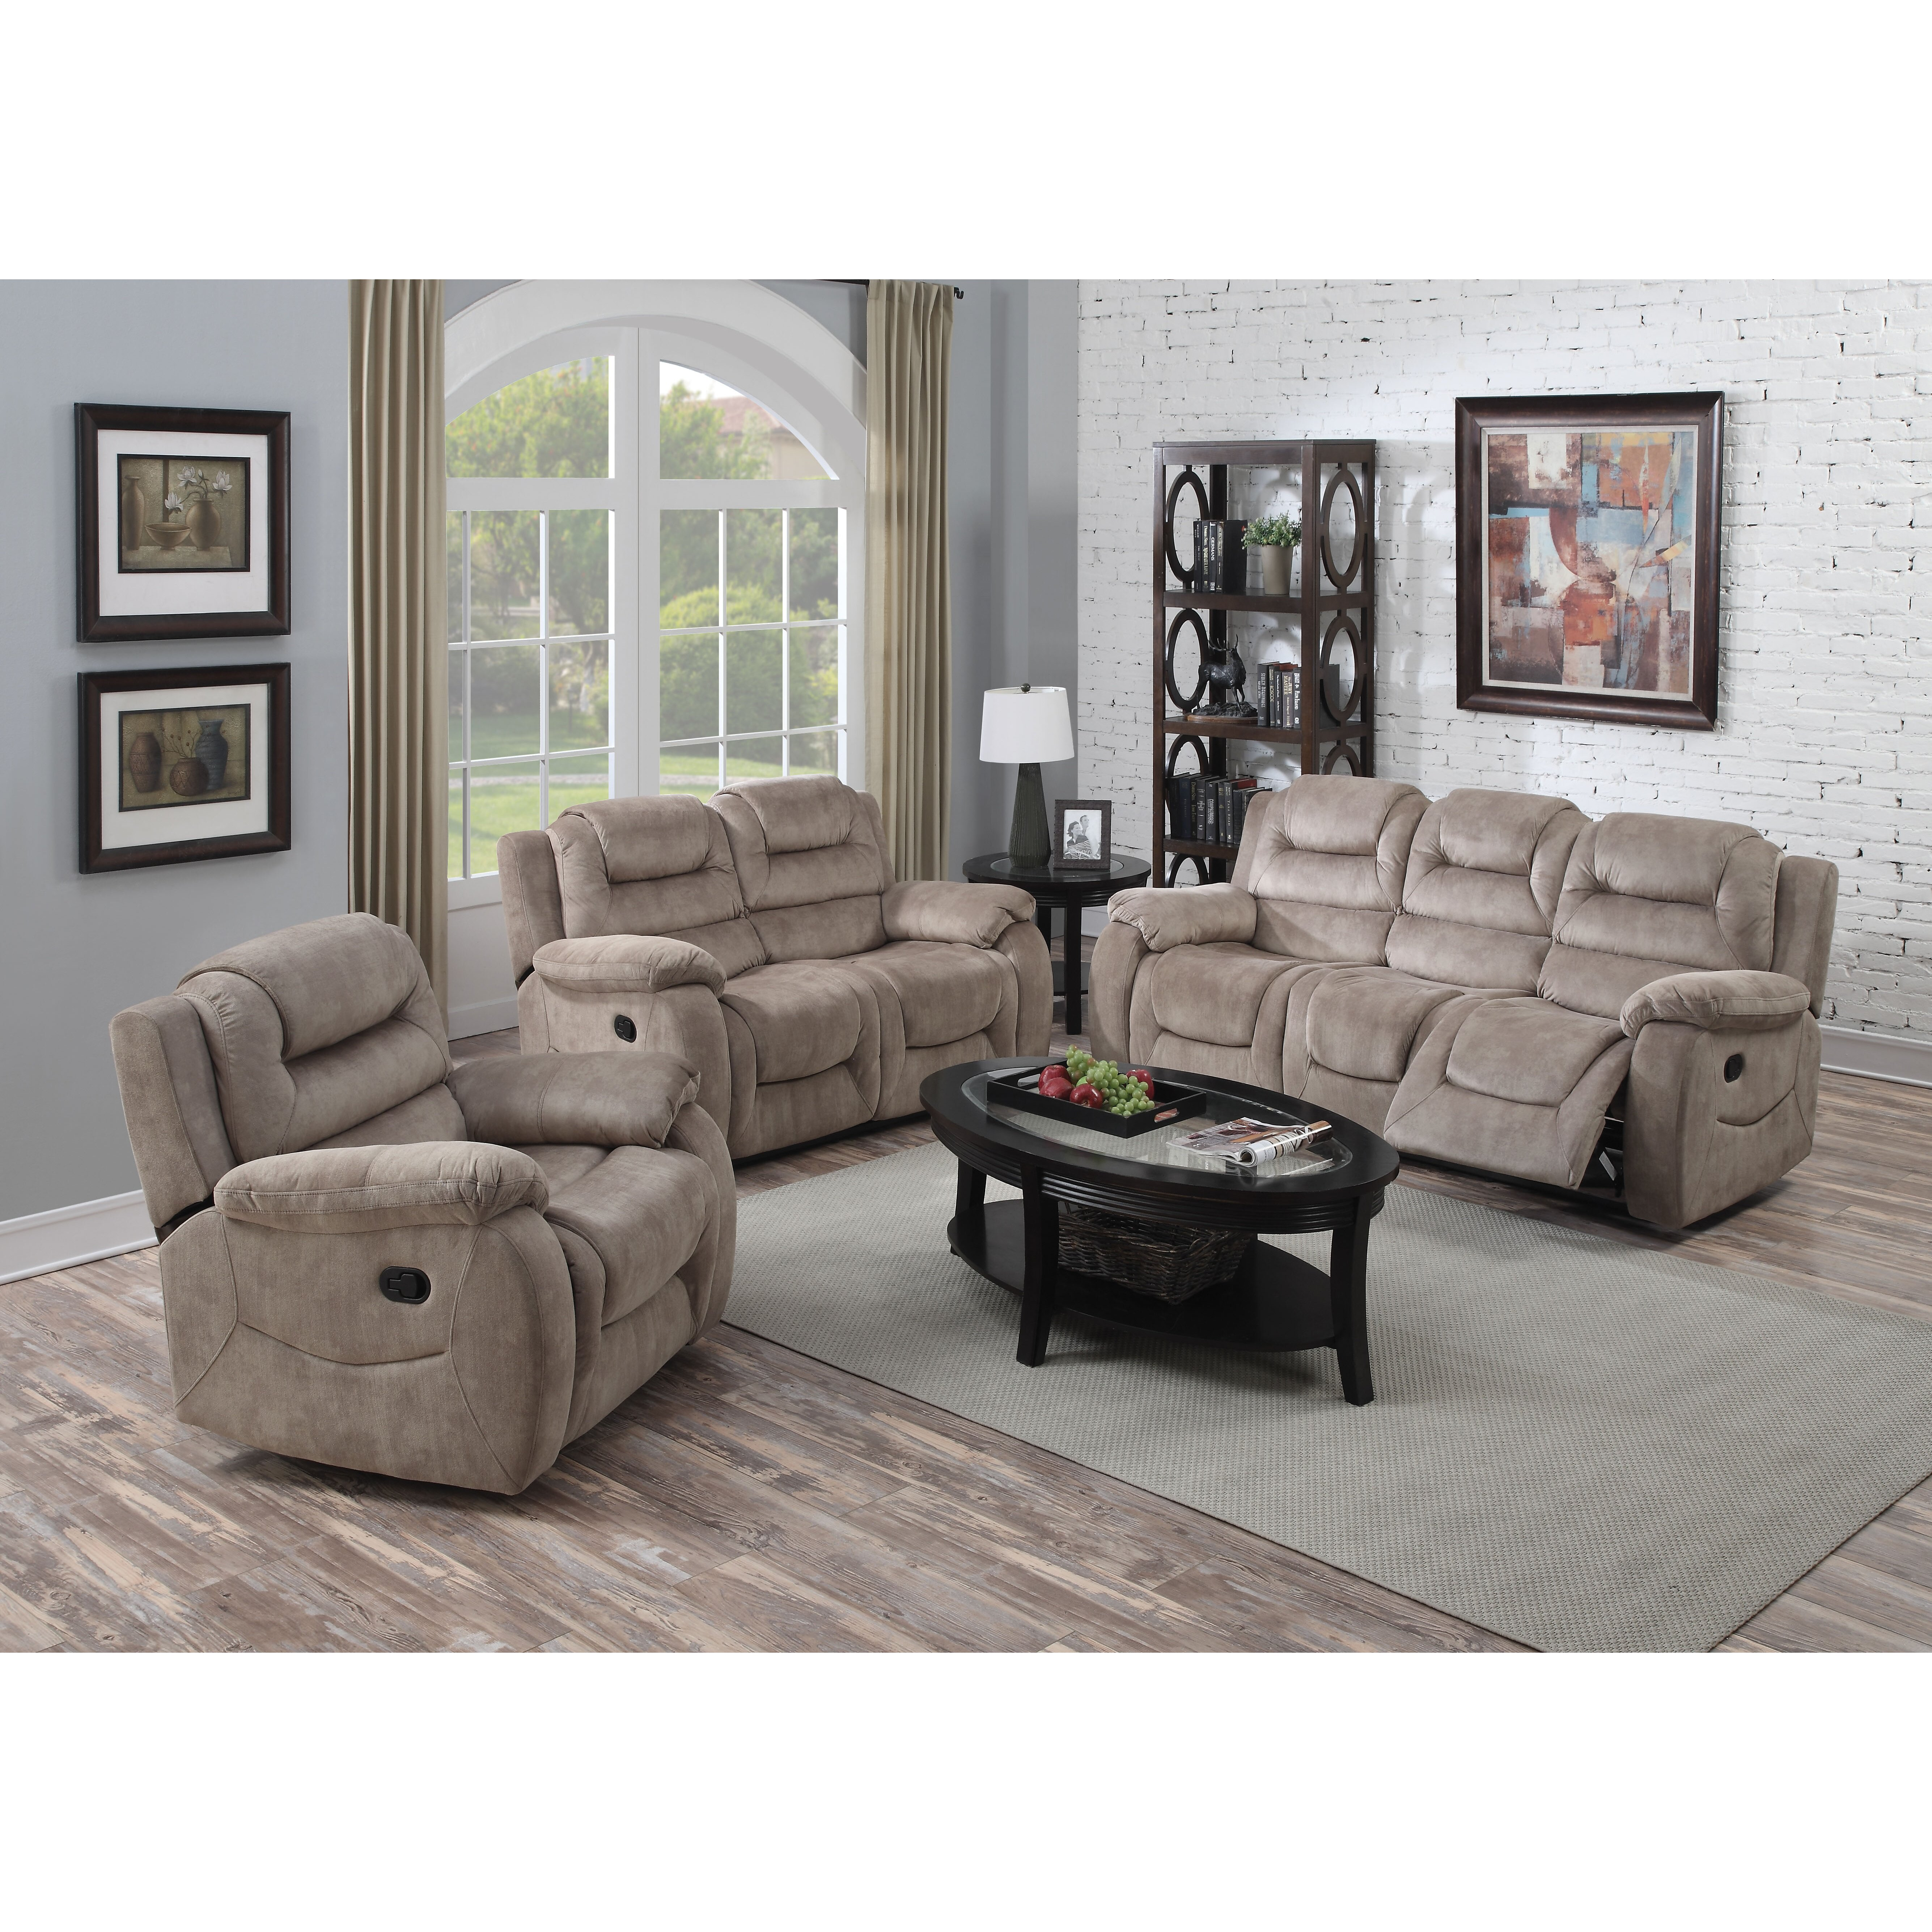 Livingroomfurniture: ACME Furniture Dreka Living Room Collection